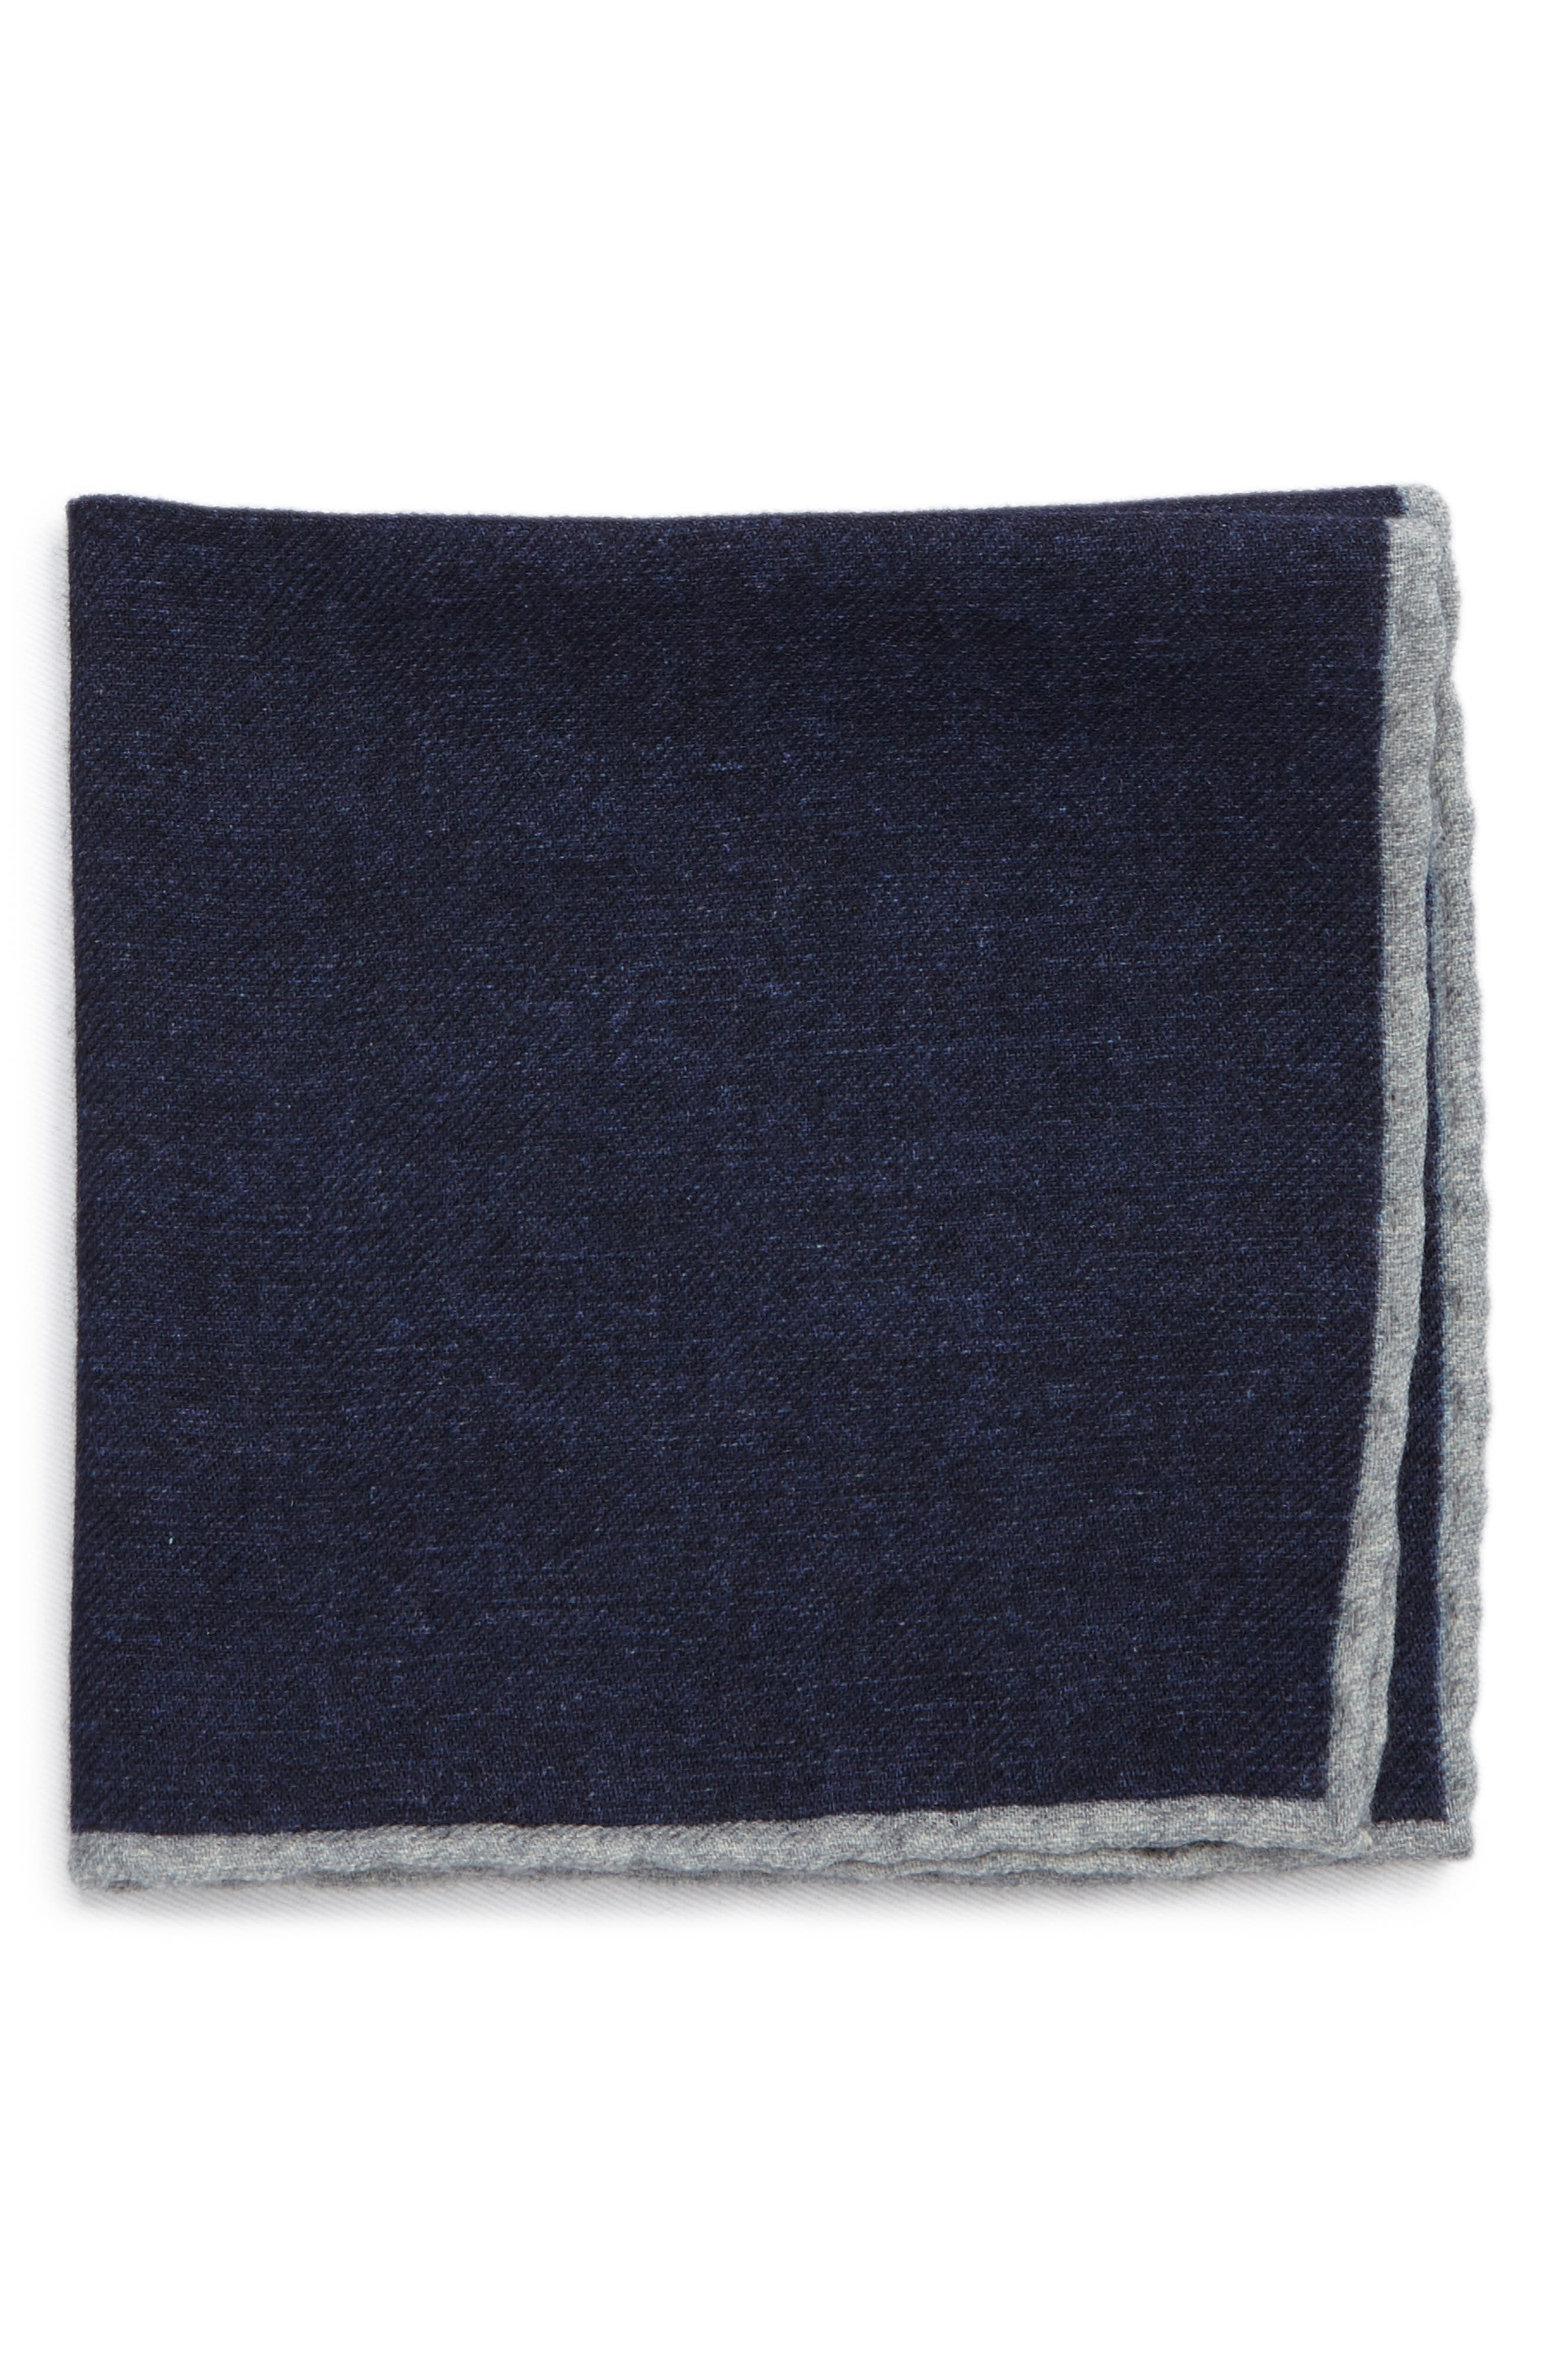 Main Image - Eleventy Flannel Wool Pocket Square